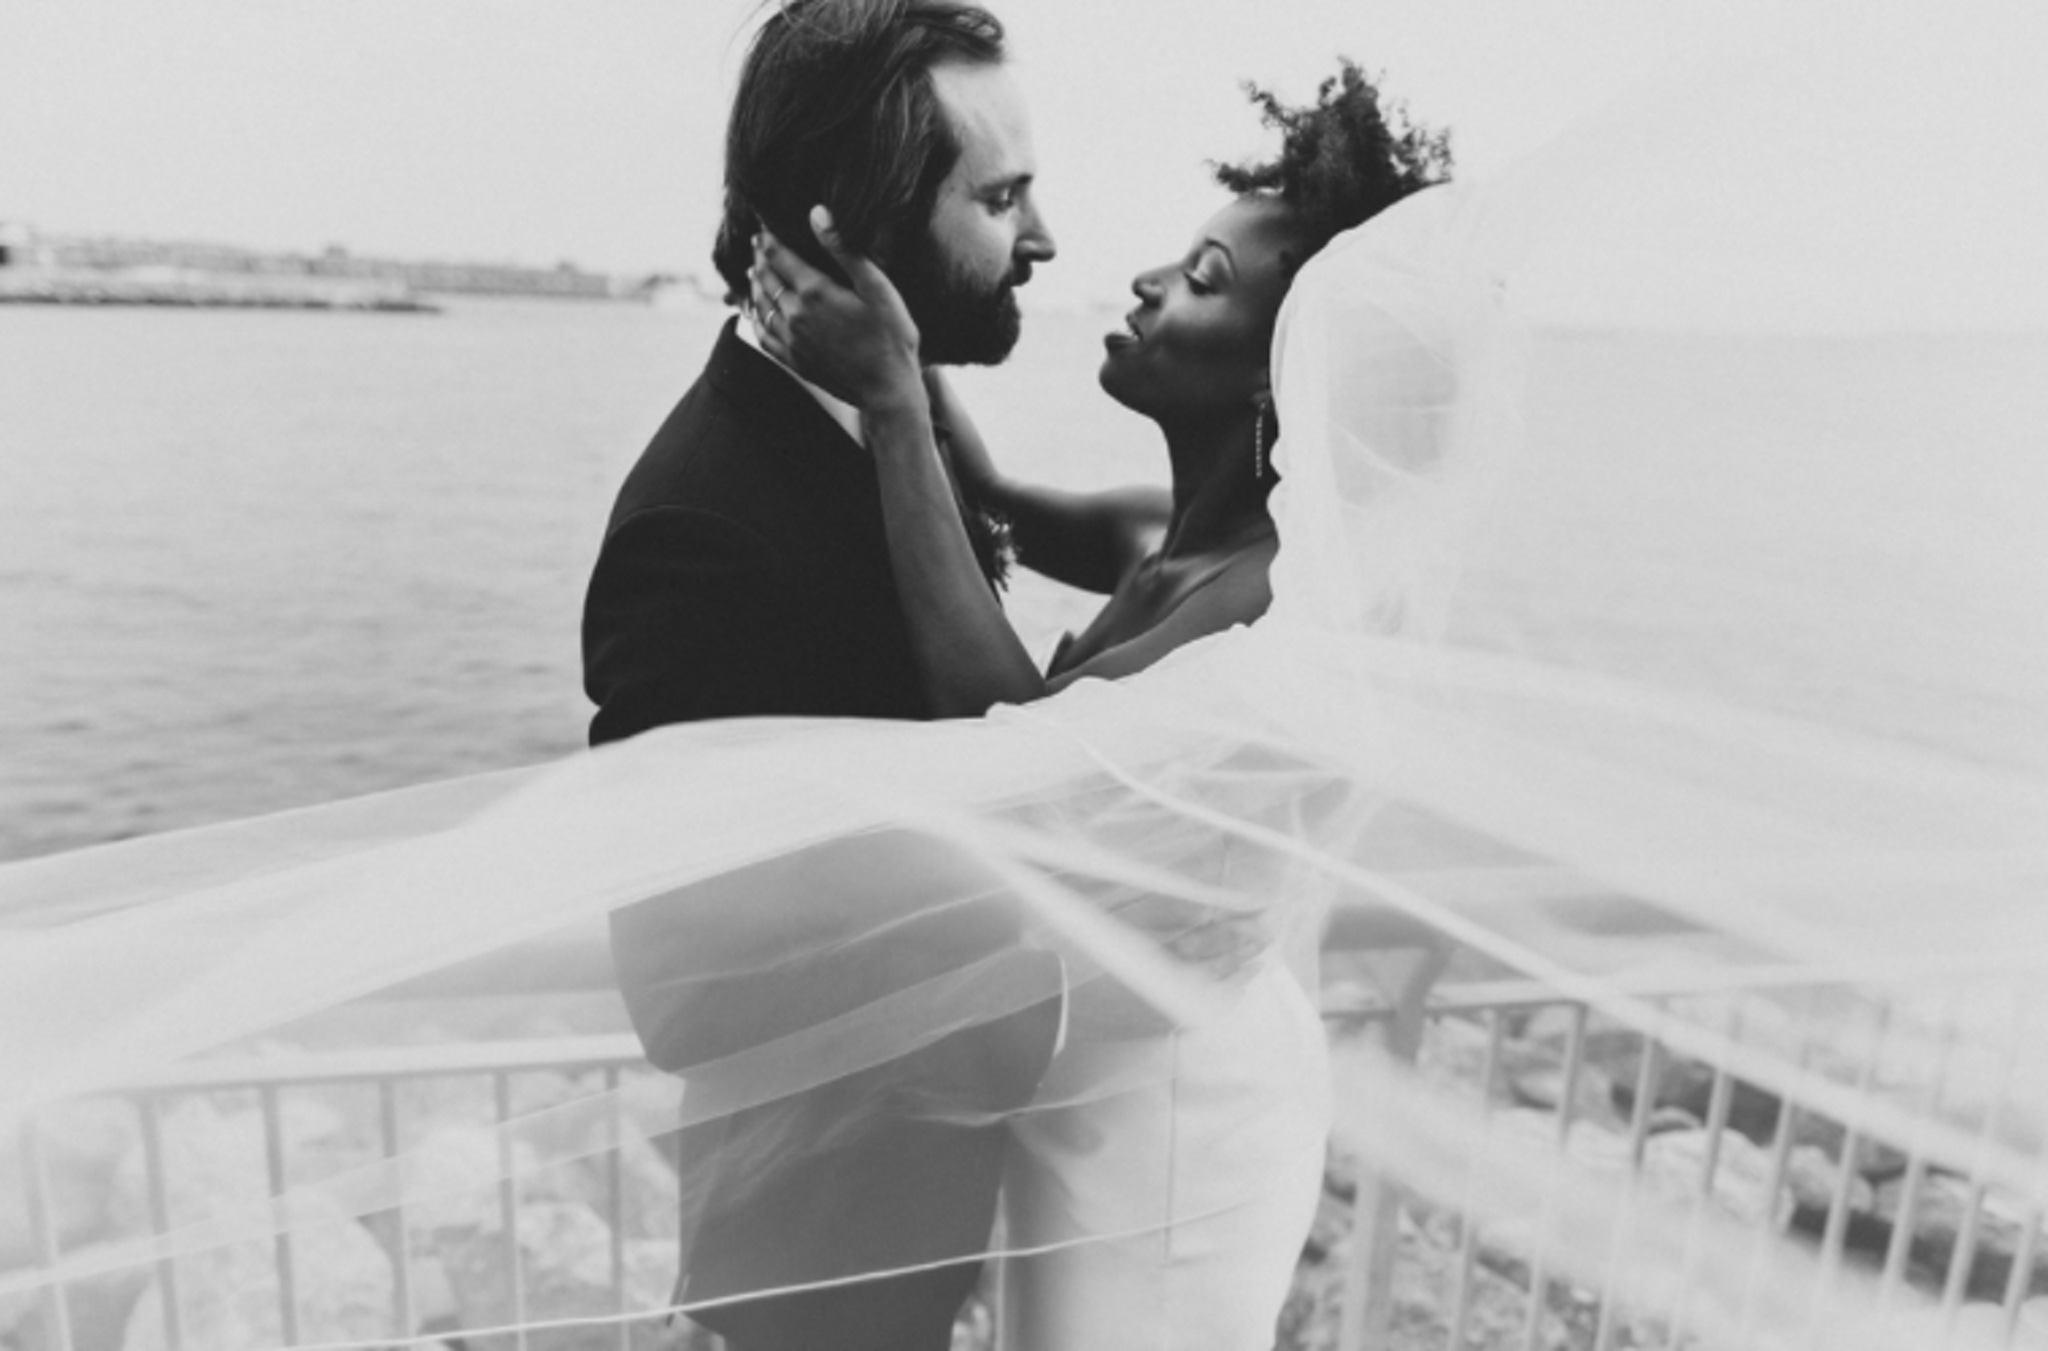 New York Photographer - Kat Harris weddings